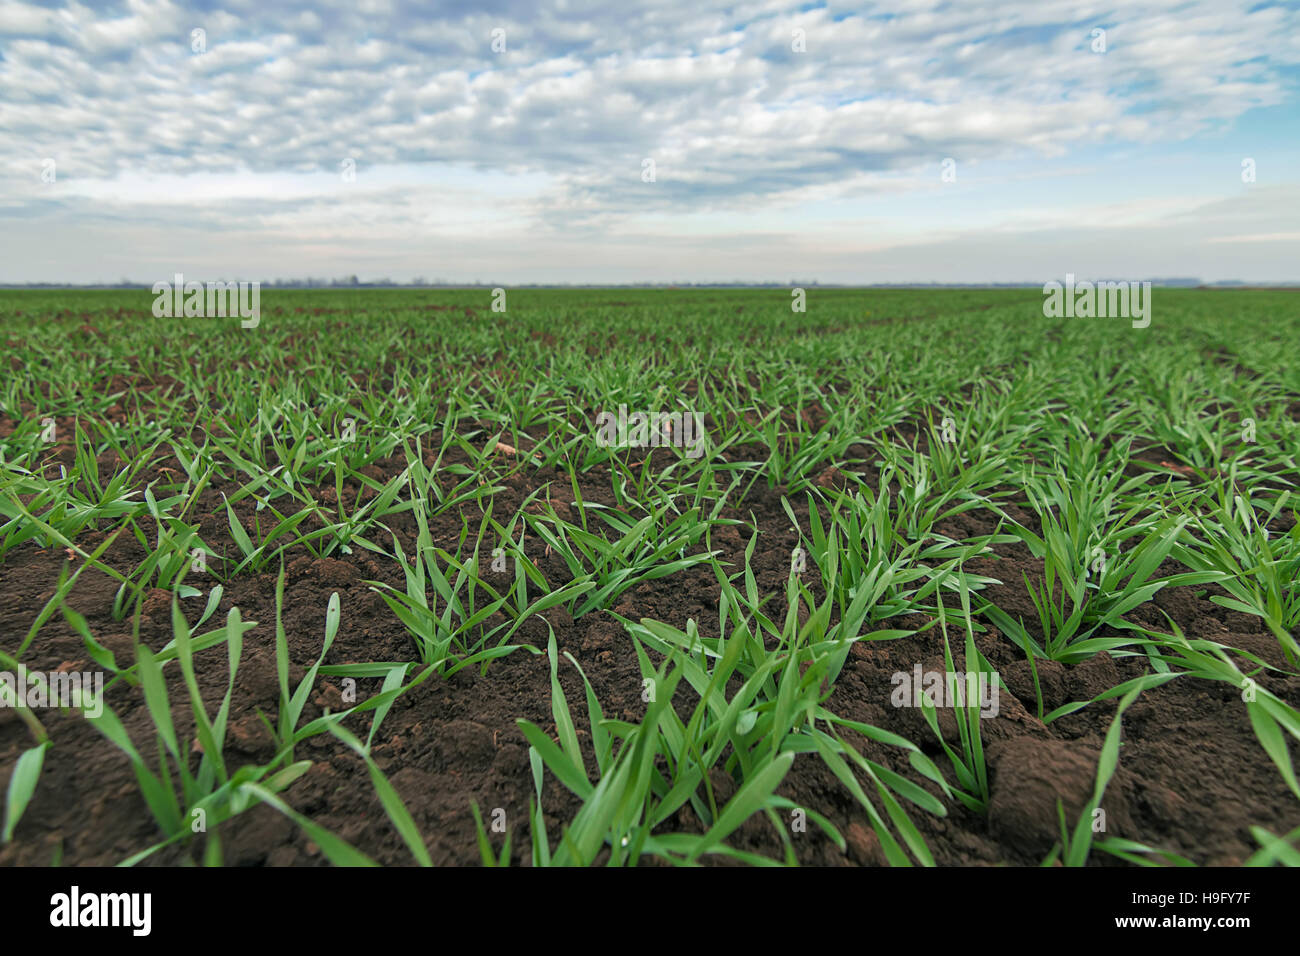 Wheat seedlings and blue sky. Young wheat  in field. Young wheat seedlings growing in a field. - Stock Image